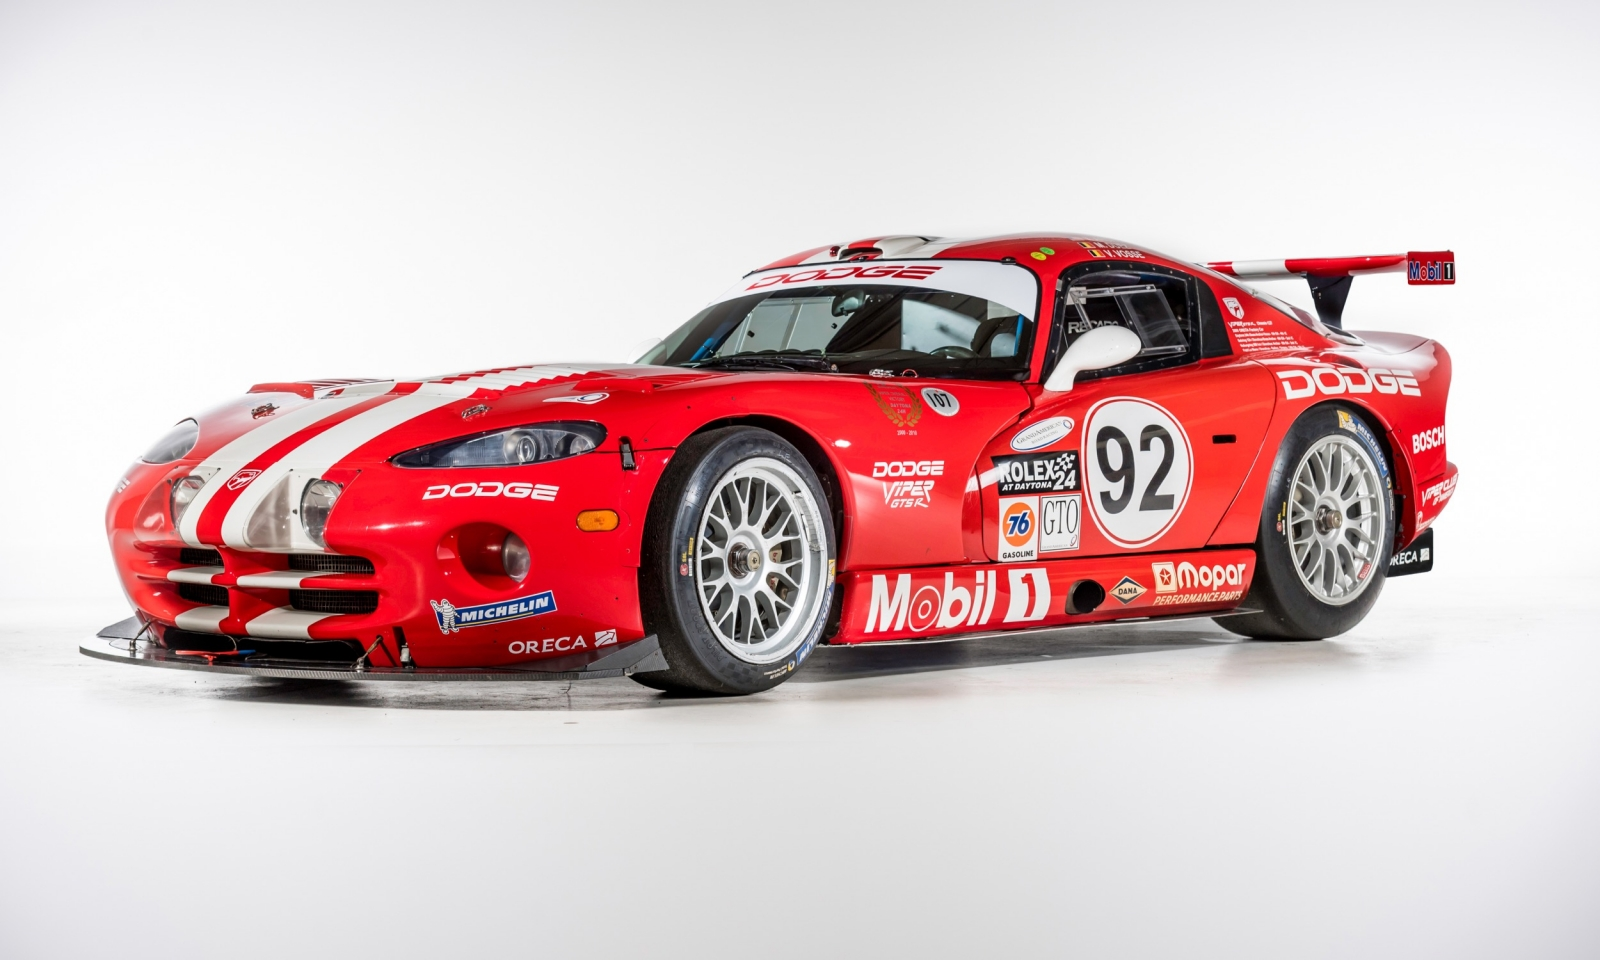 The development of the Viper GTS-R was the result of a collaboration between Chrysler, Oreca Engineering and Reynard Motorsport which led to the production of 57 competition examples. They claimed many successes including the outright victory in the 24 Hours of Daytona and the three consecutive class wins at Le Mans from 1998 to 2000